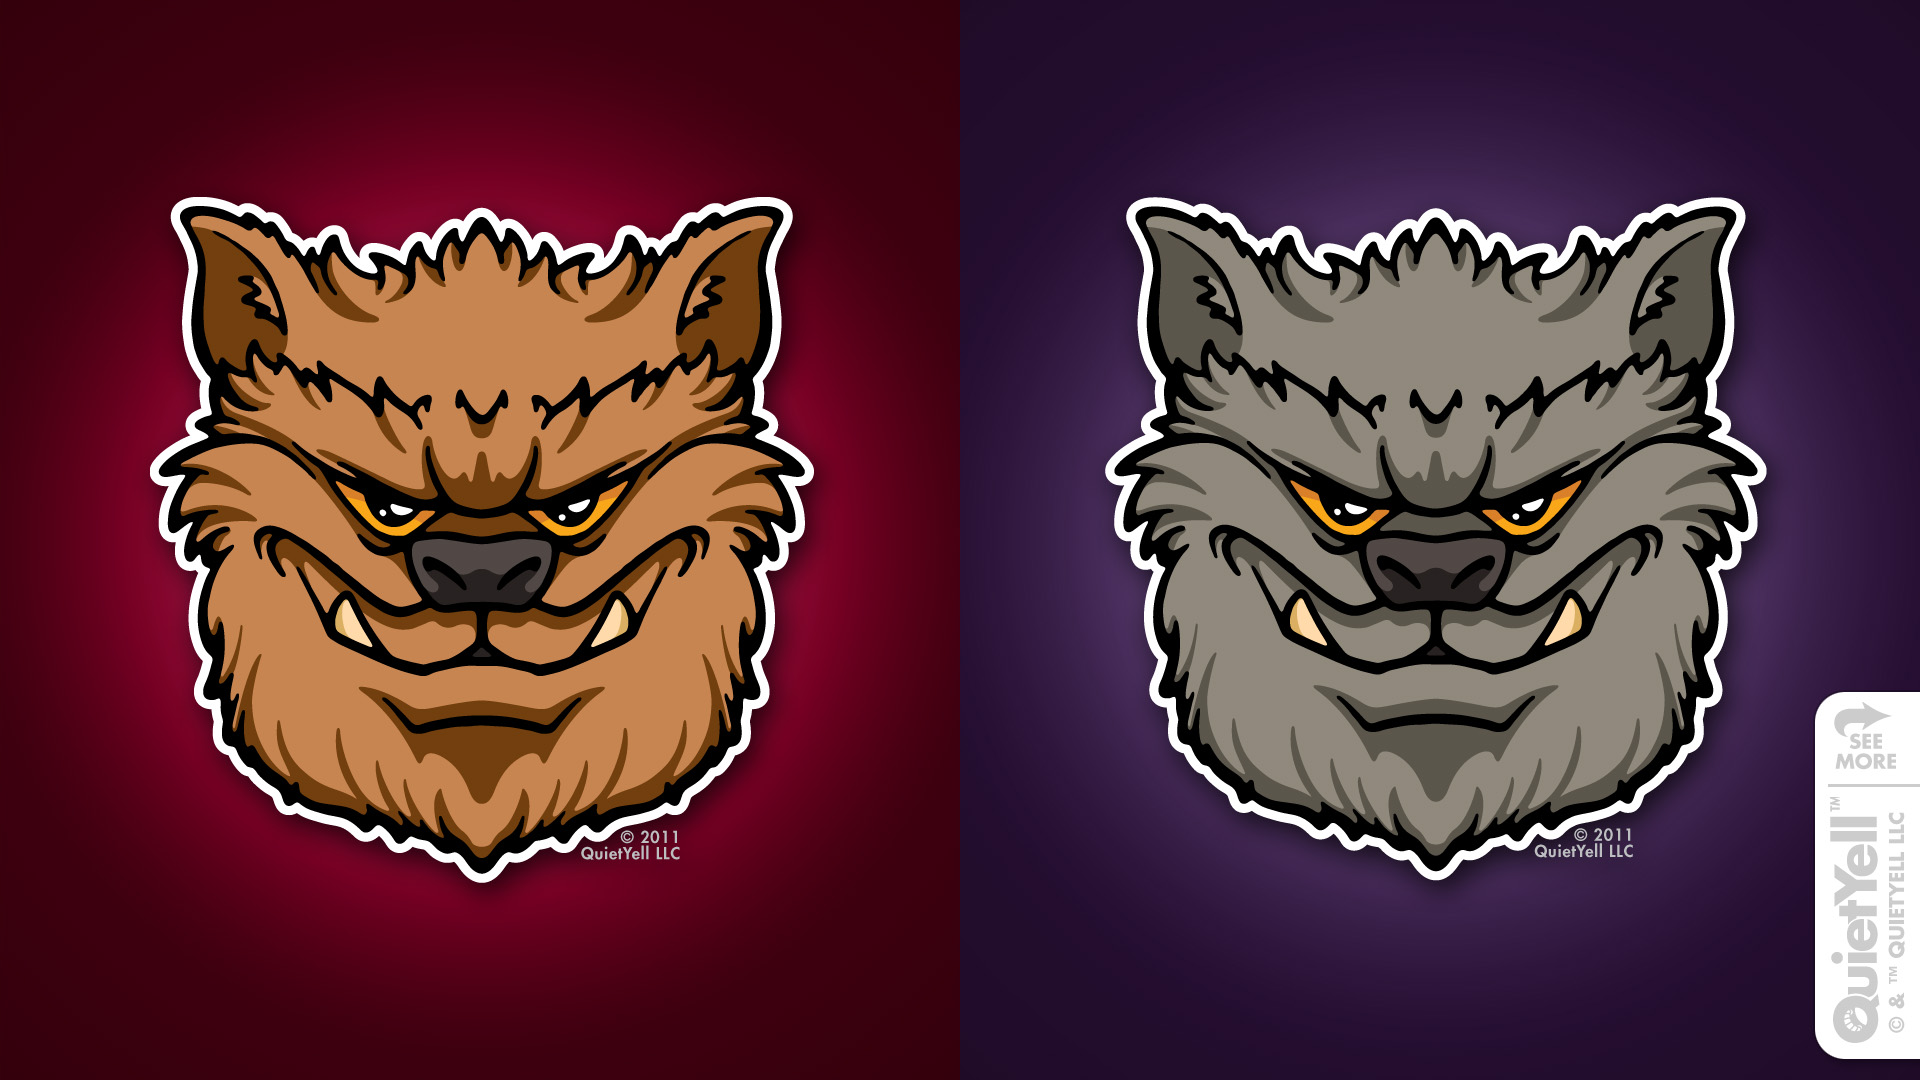 quietyell_illustration_full_monsterheads2011_werewolf_01